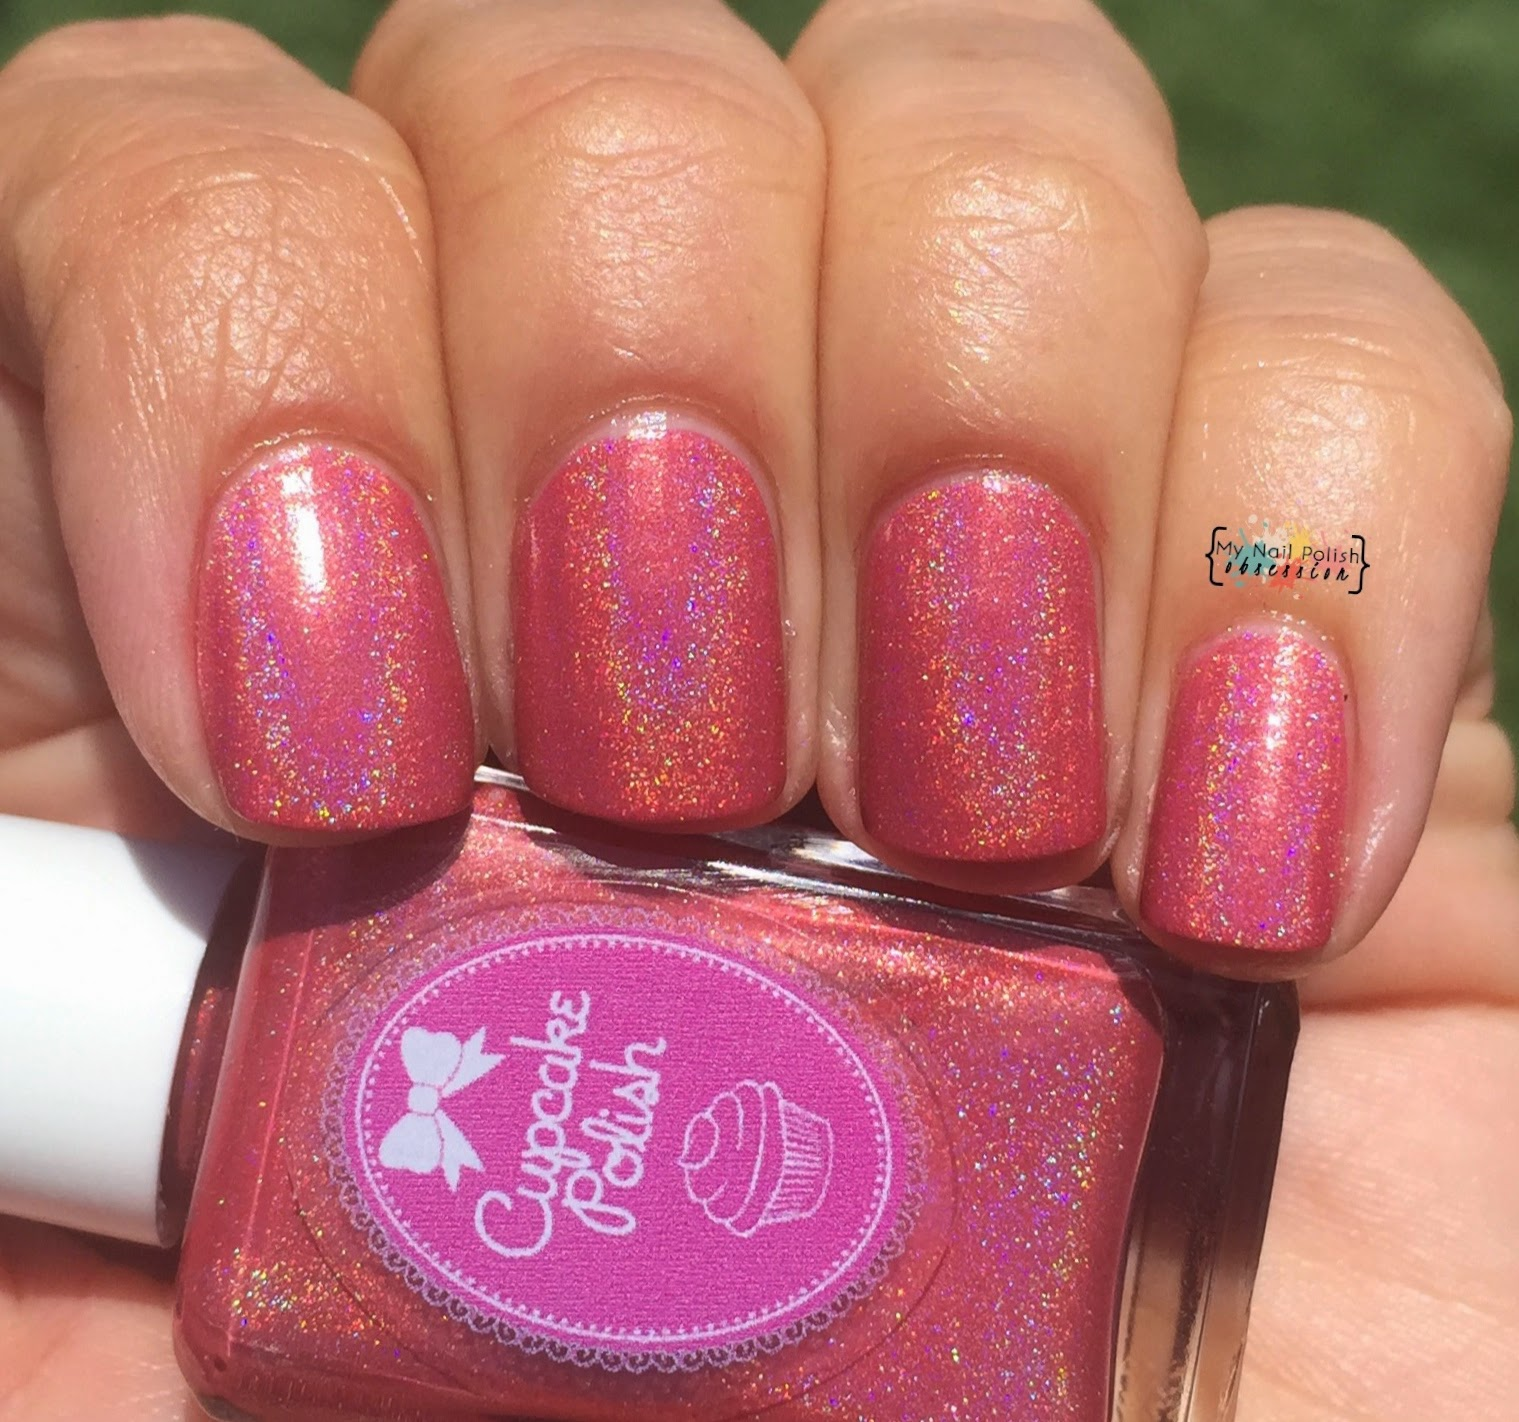 Cupcake Polish A Budding Romance